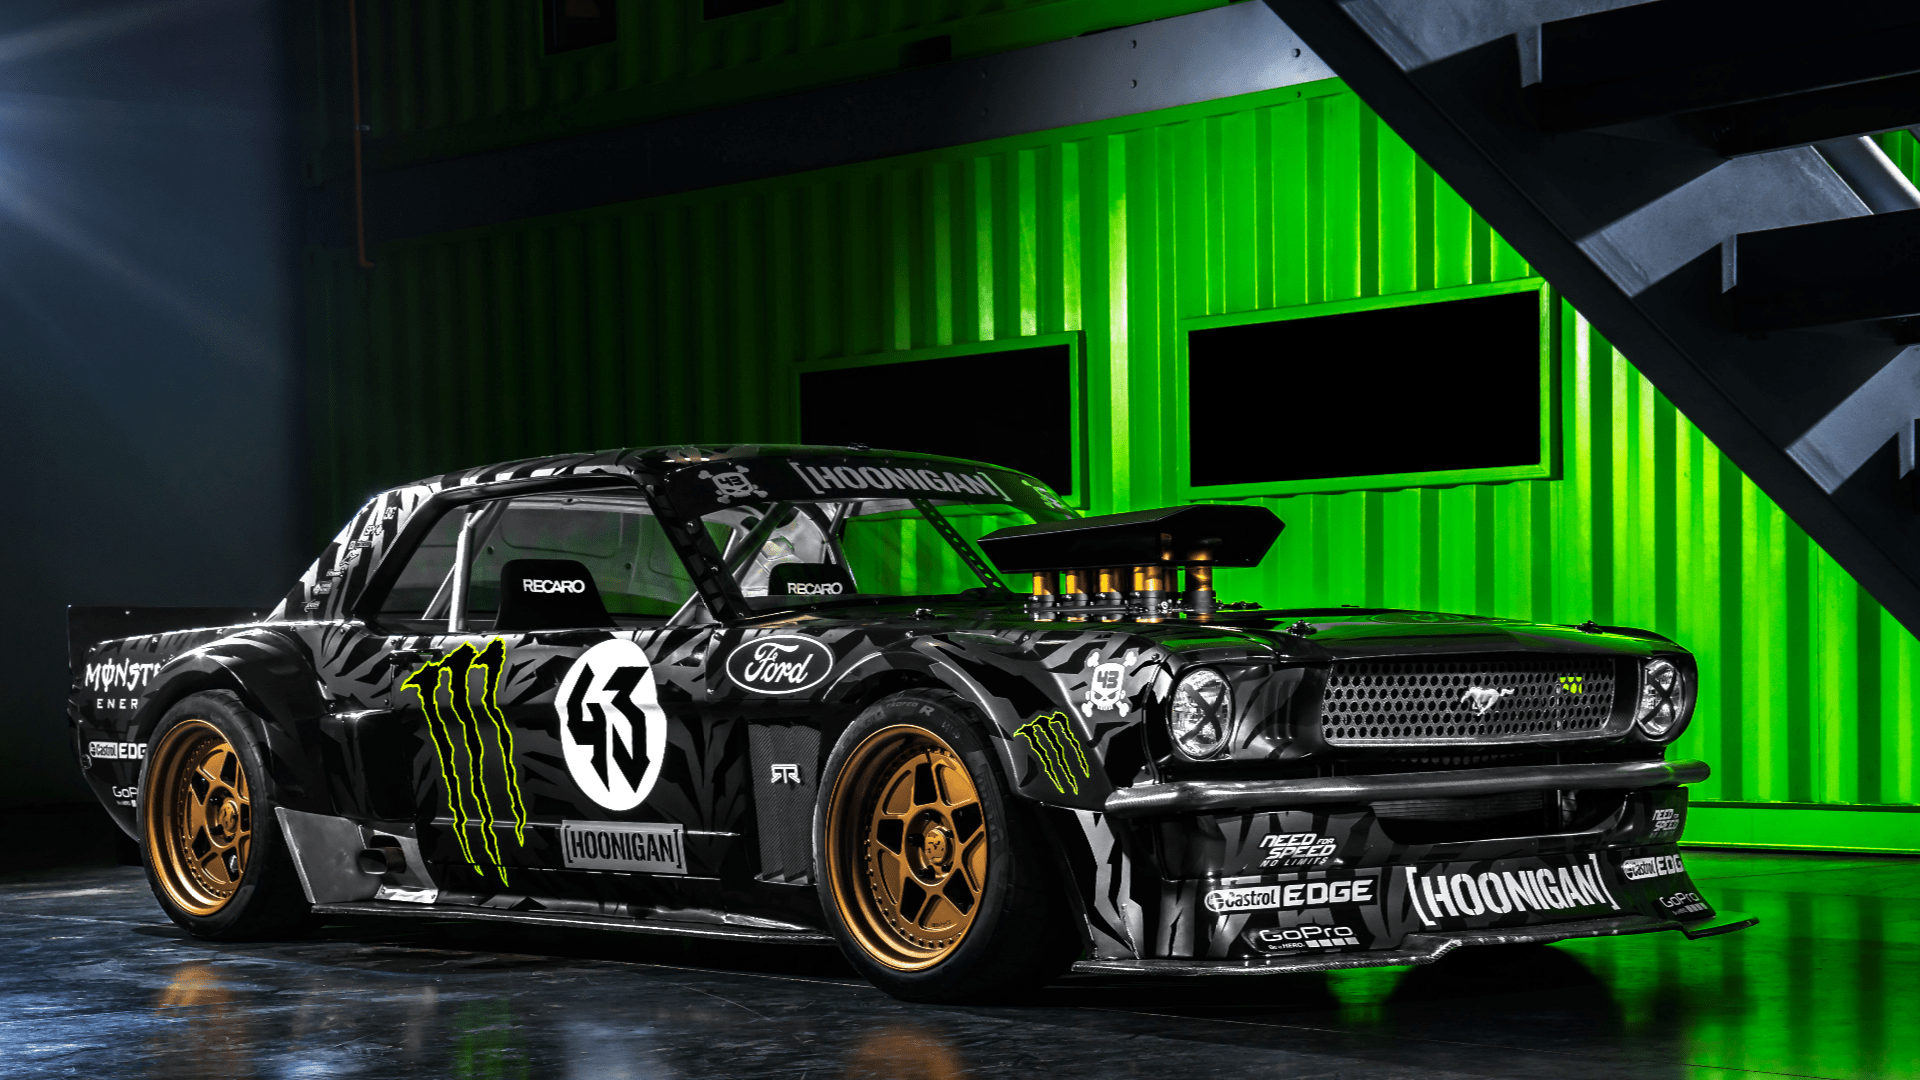 R34 Wallpaper Hd Ken Block Mustang 1 Ps4wallpapers Com